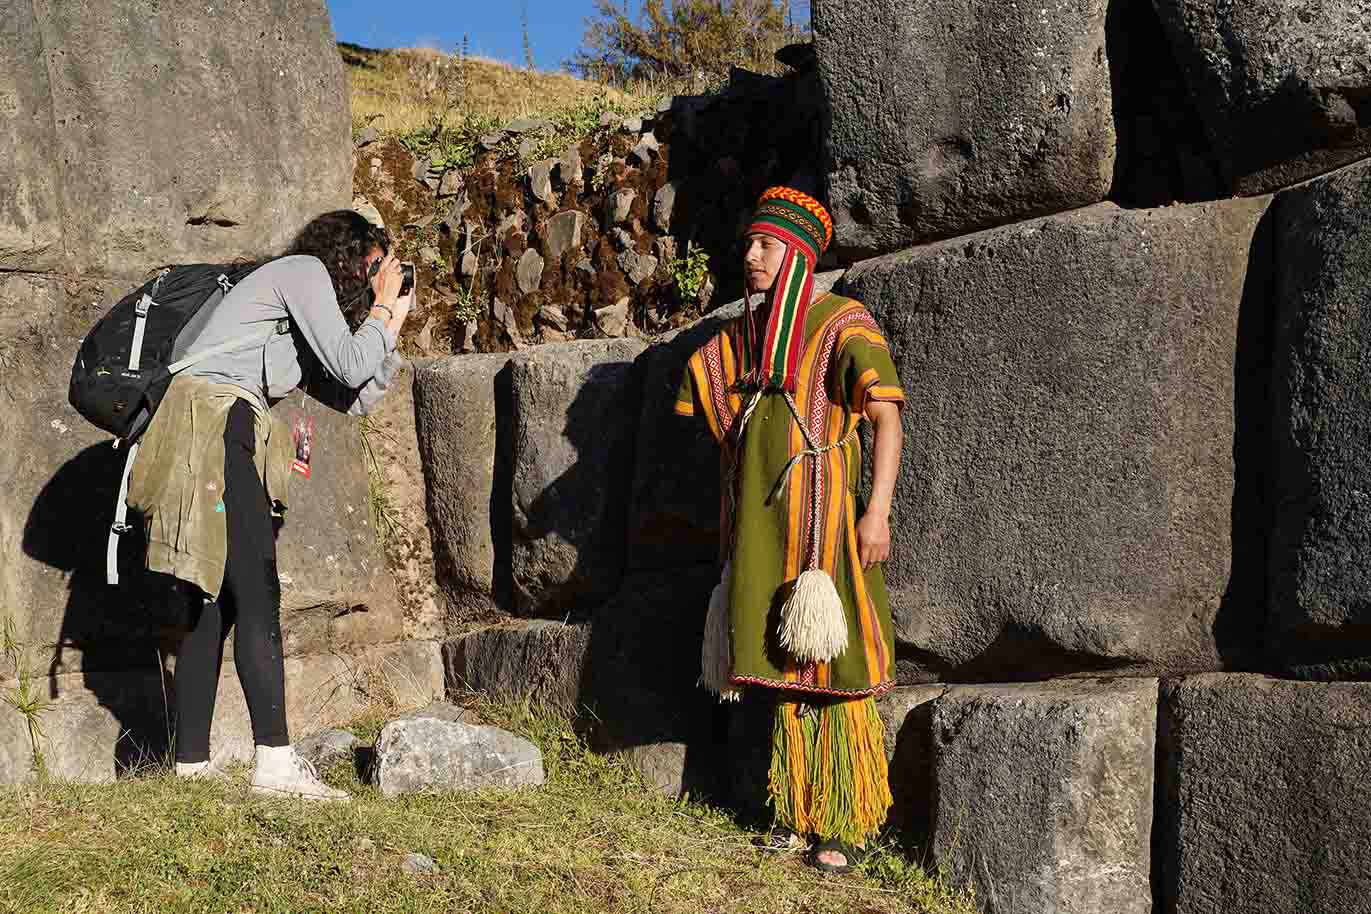 jimmy-nelson-foundation-peru-quechua-behind-the-scenes-gallery-27